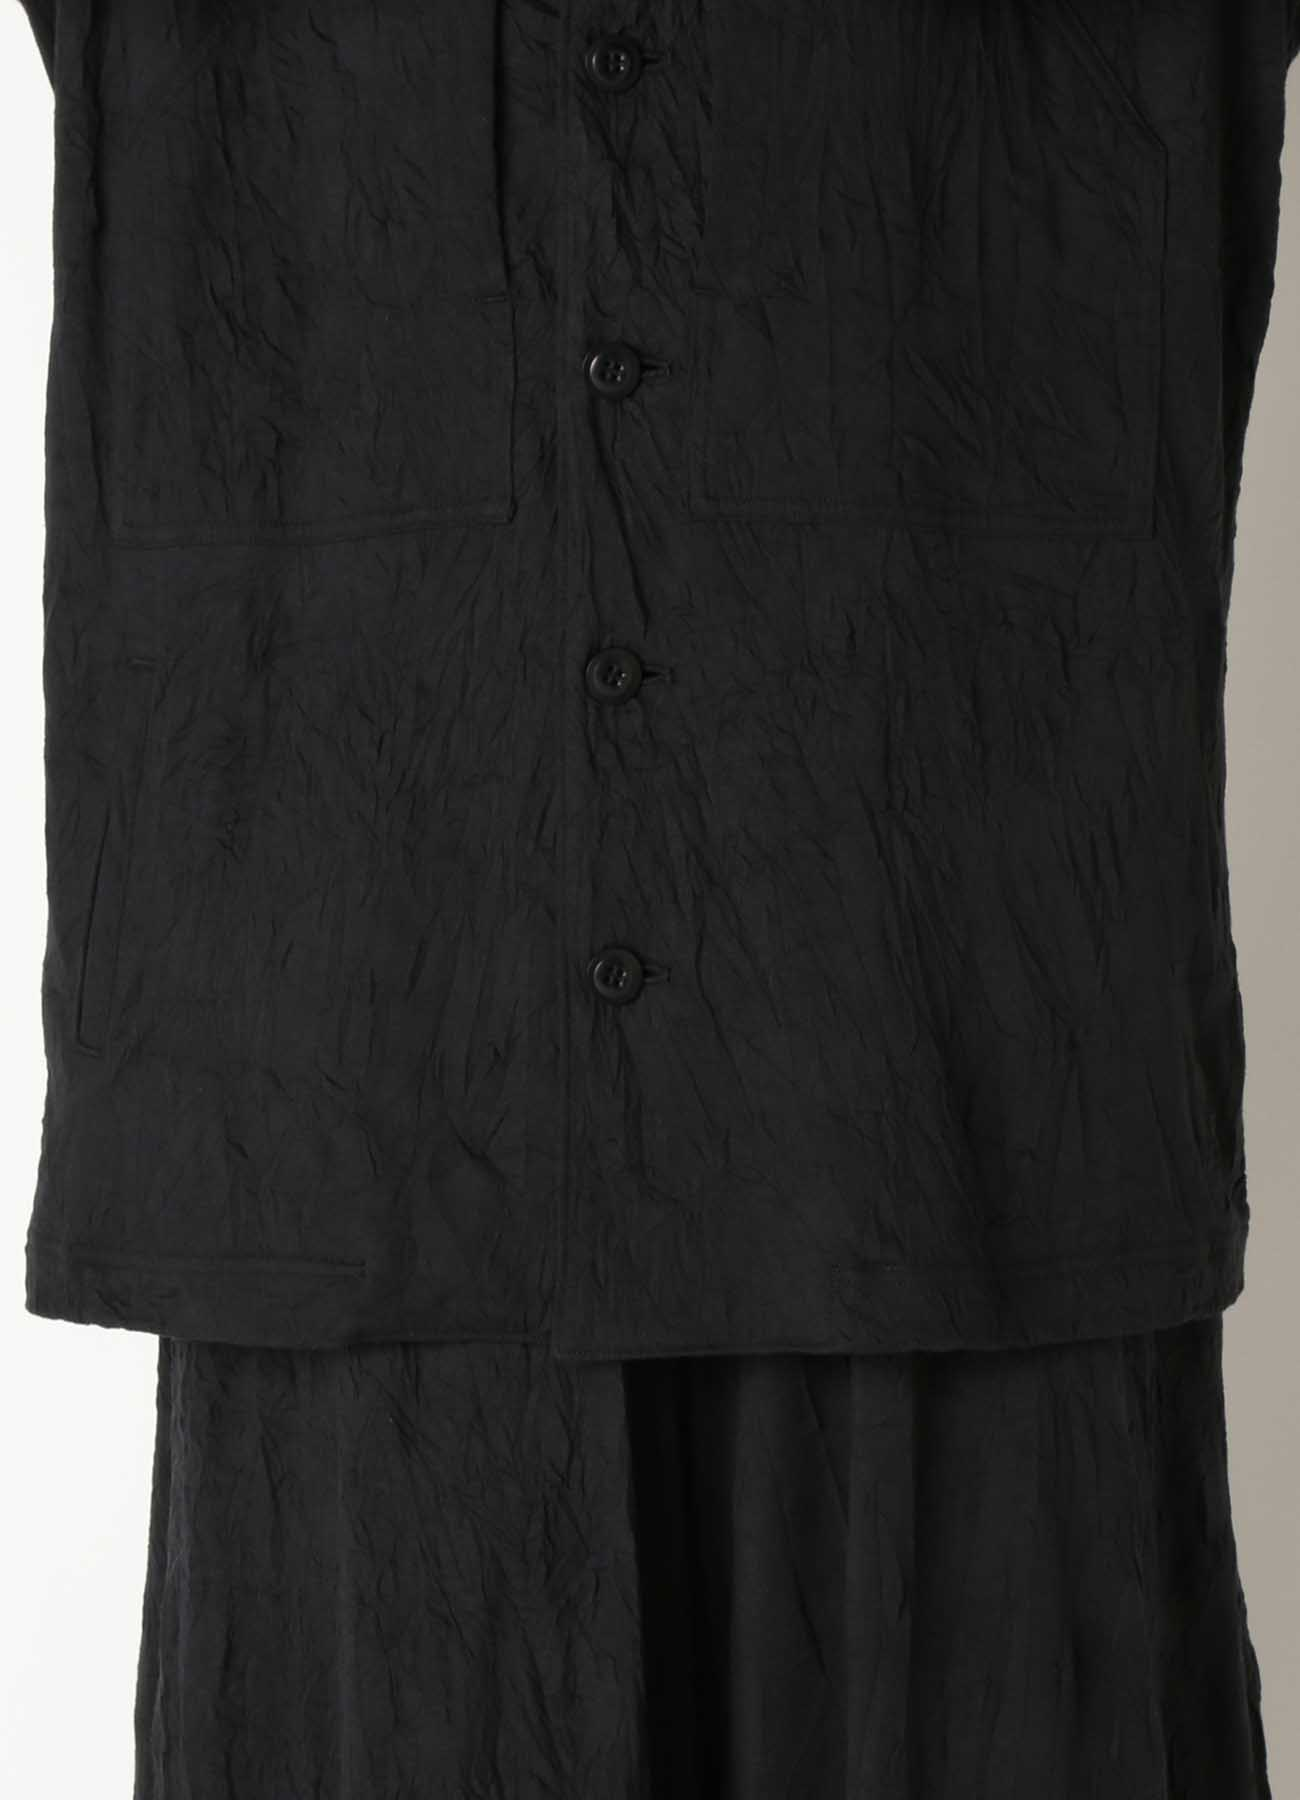 30/- T/C PS WRINKLED ROBE DRAWING BLOCK PT